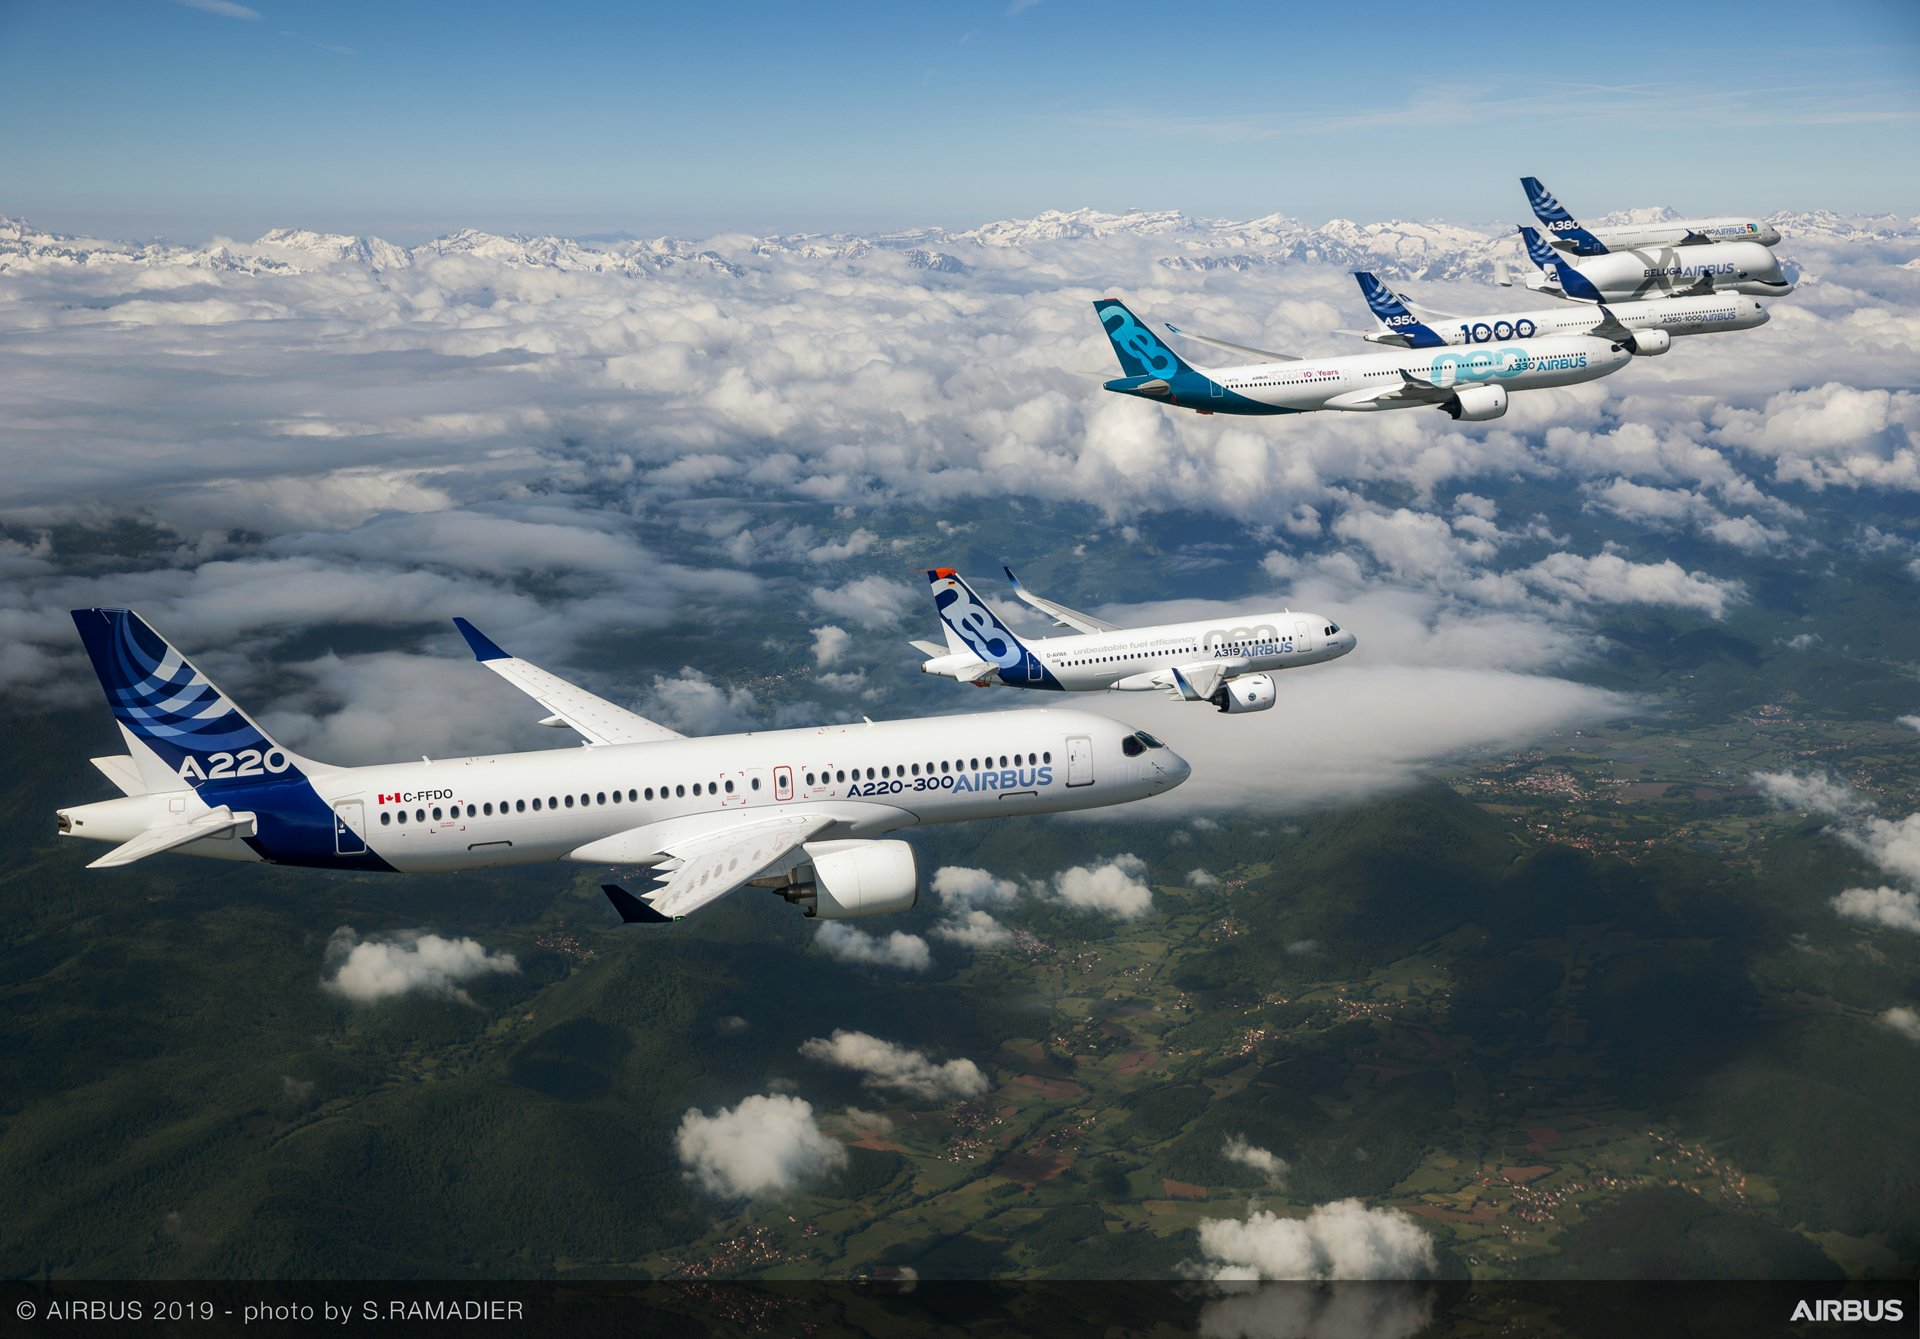 Airbus Commercial Aircraft formation flight – Airbus 50-year anniversary